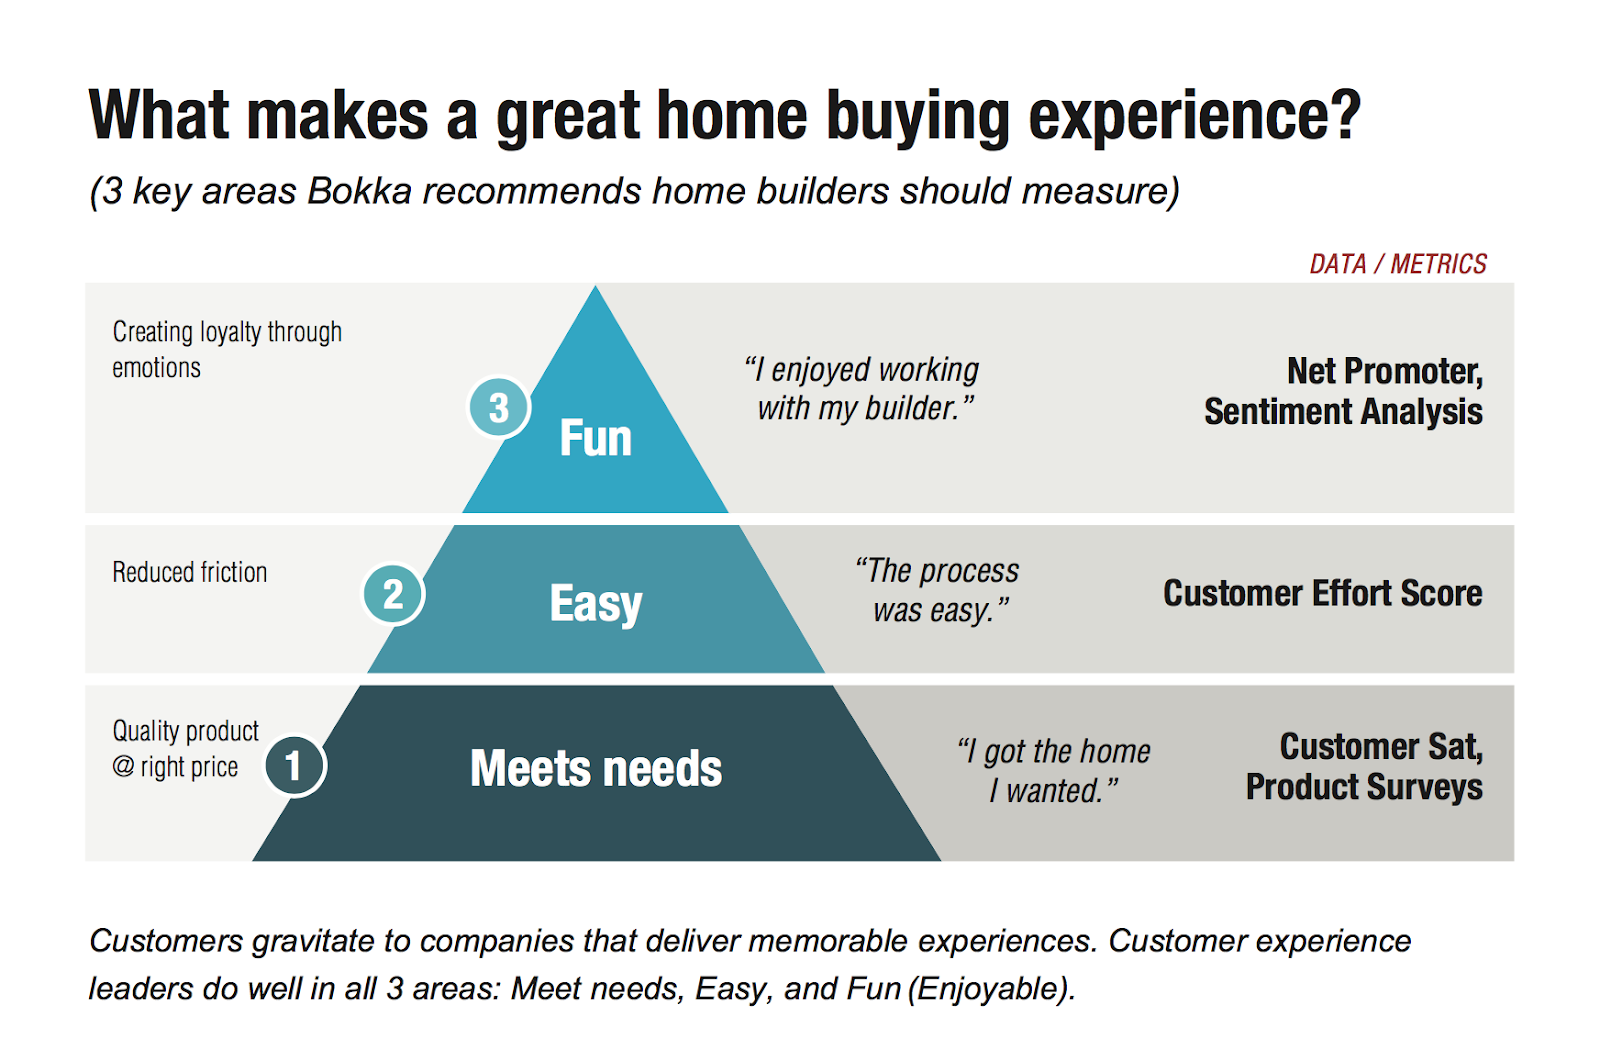 What makes a great home buying experience?